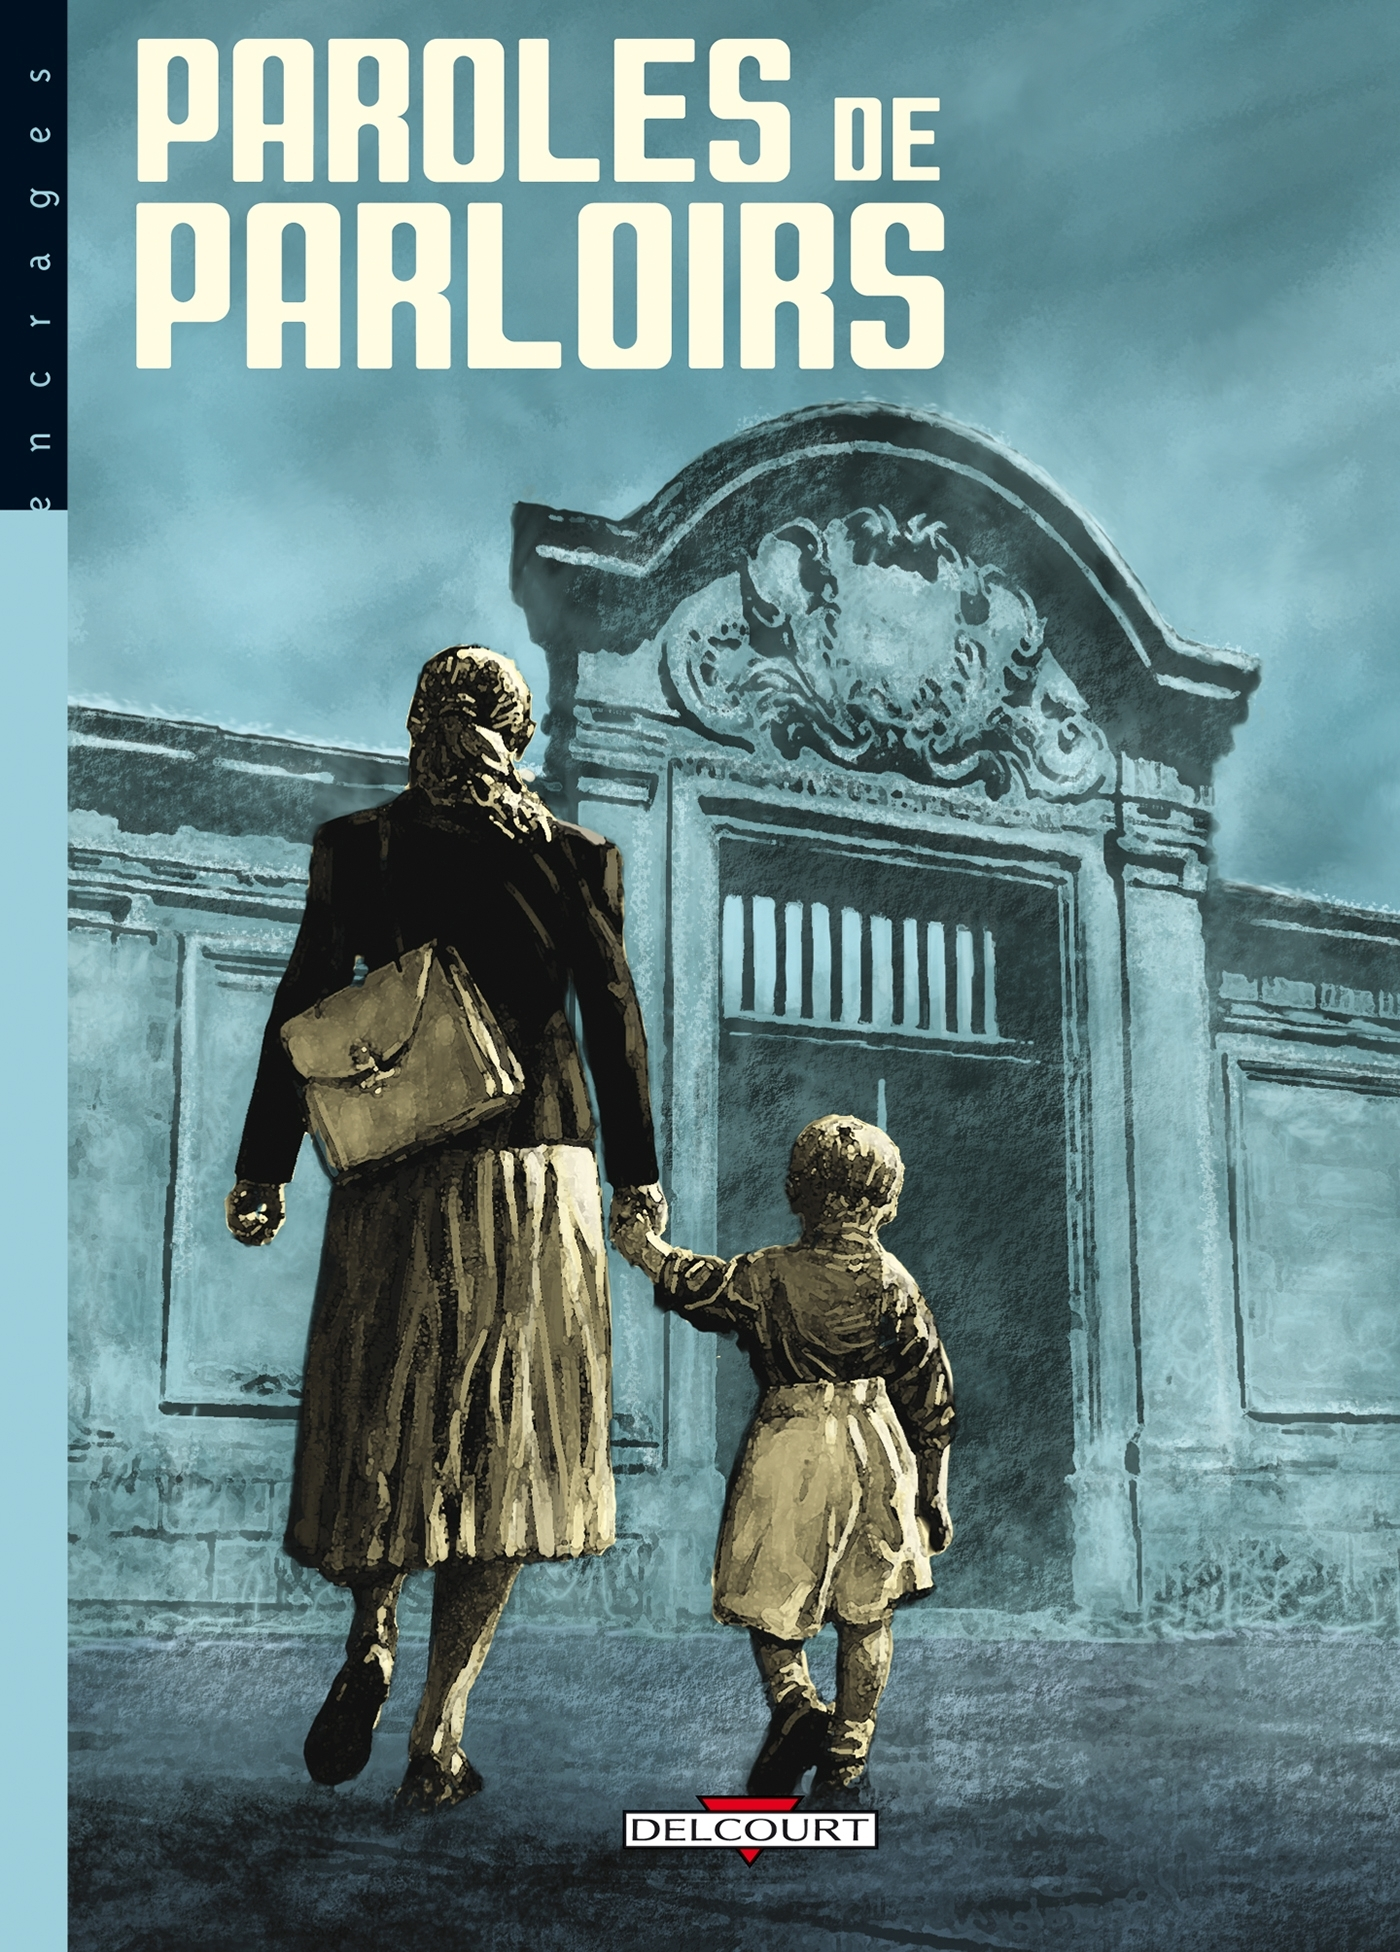 PAROLES DE TAULARDS T03 - PAROLES DE PARLOIRS